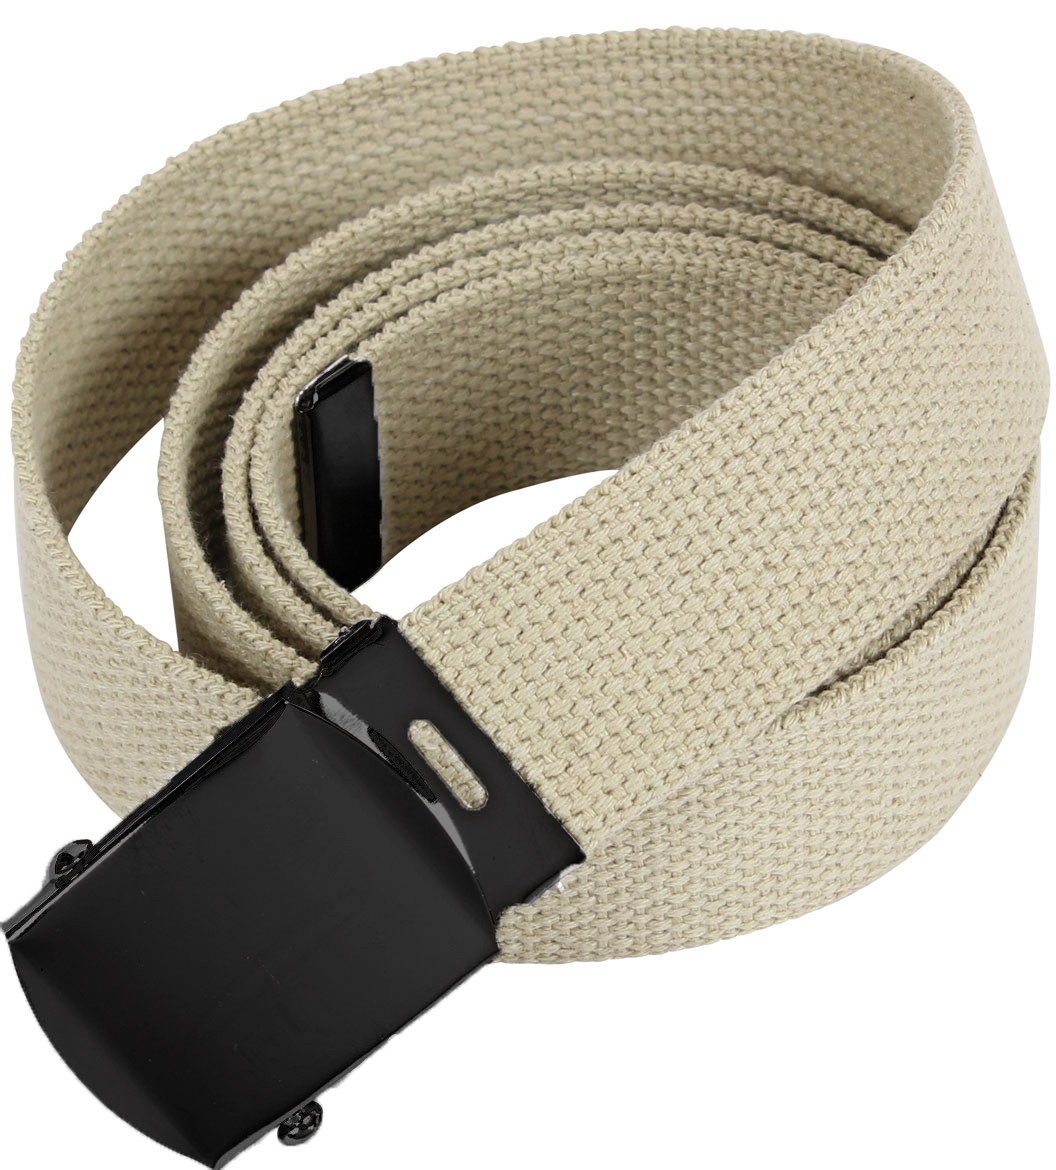 Khaki Military Web Belt with Black Buckle 820f2795b11